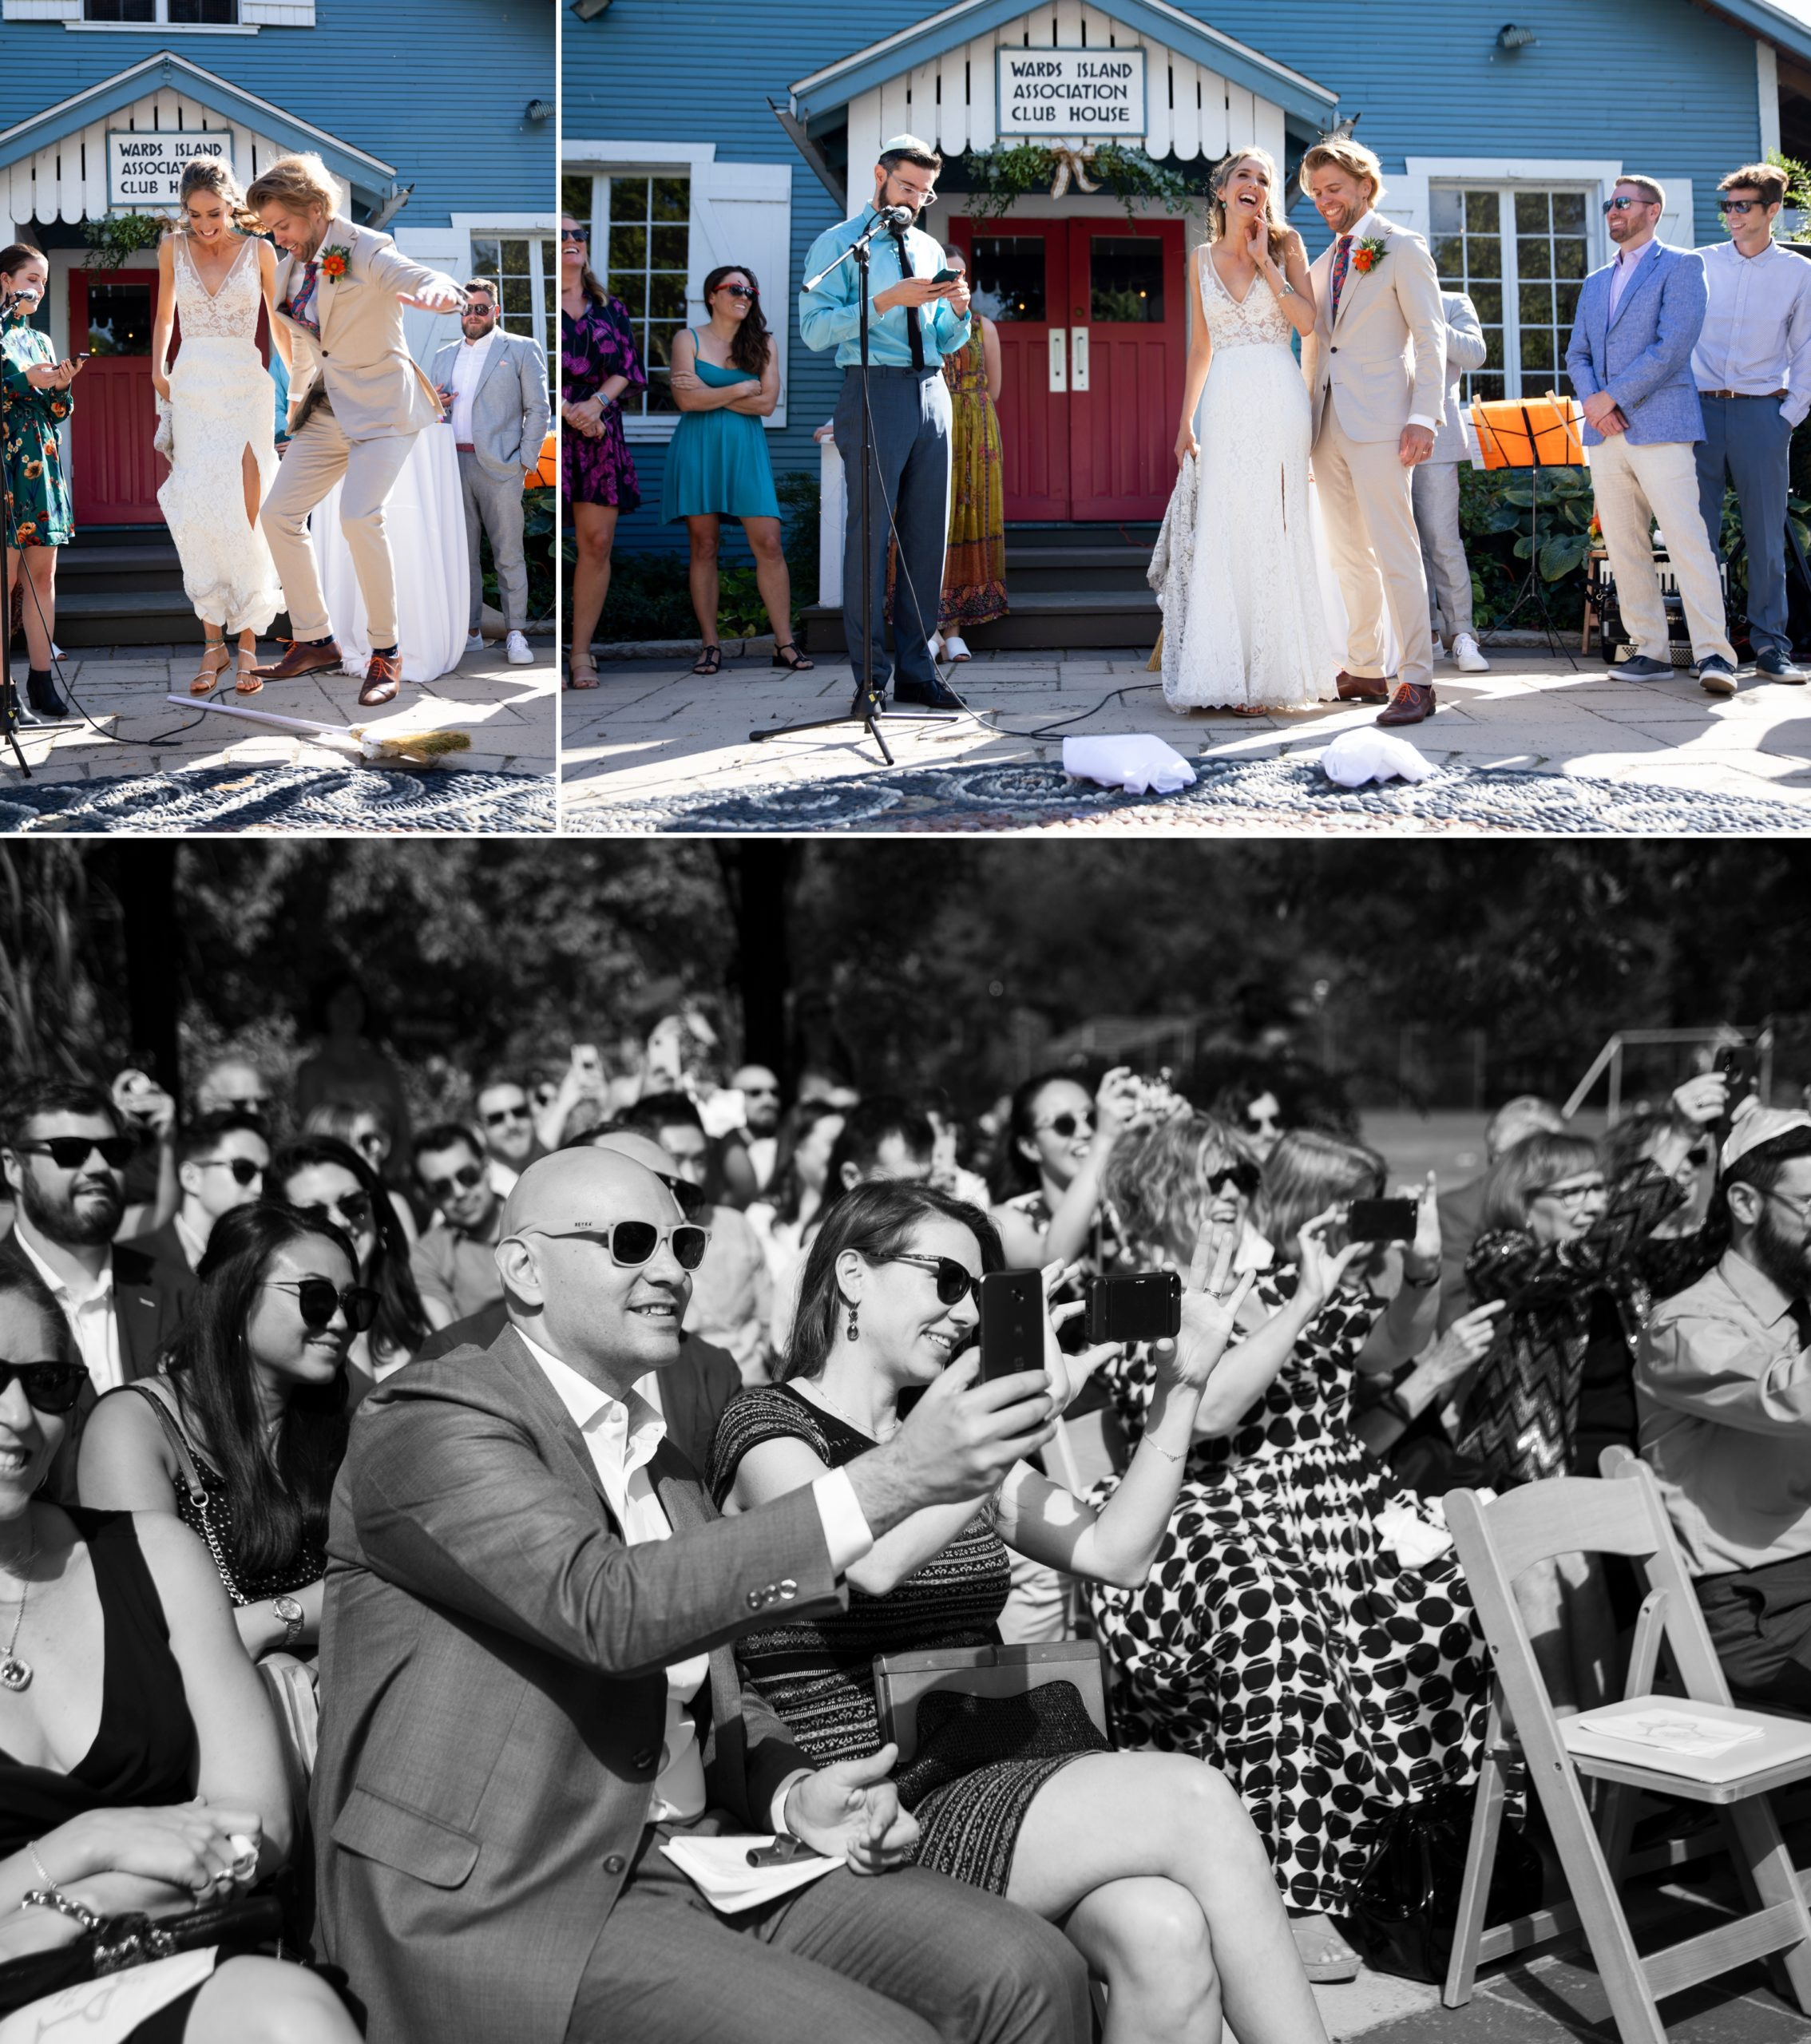 Fun Ceremony Toronto Ward's Island Summer Wedding Zsuzsi Pal Photography